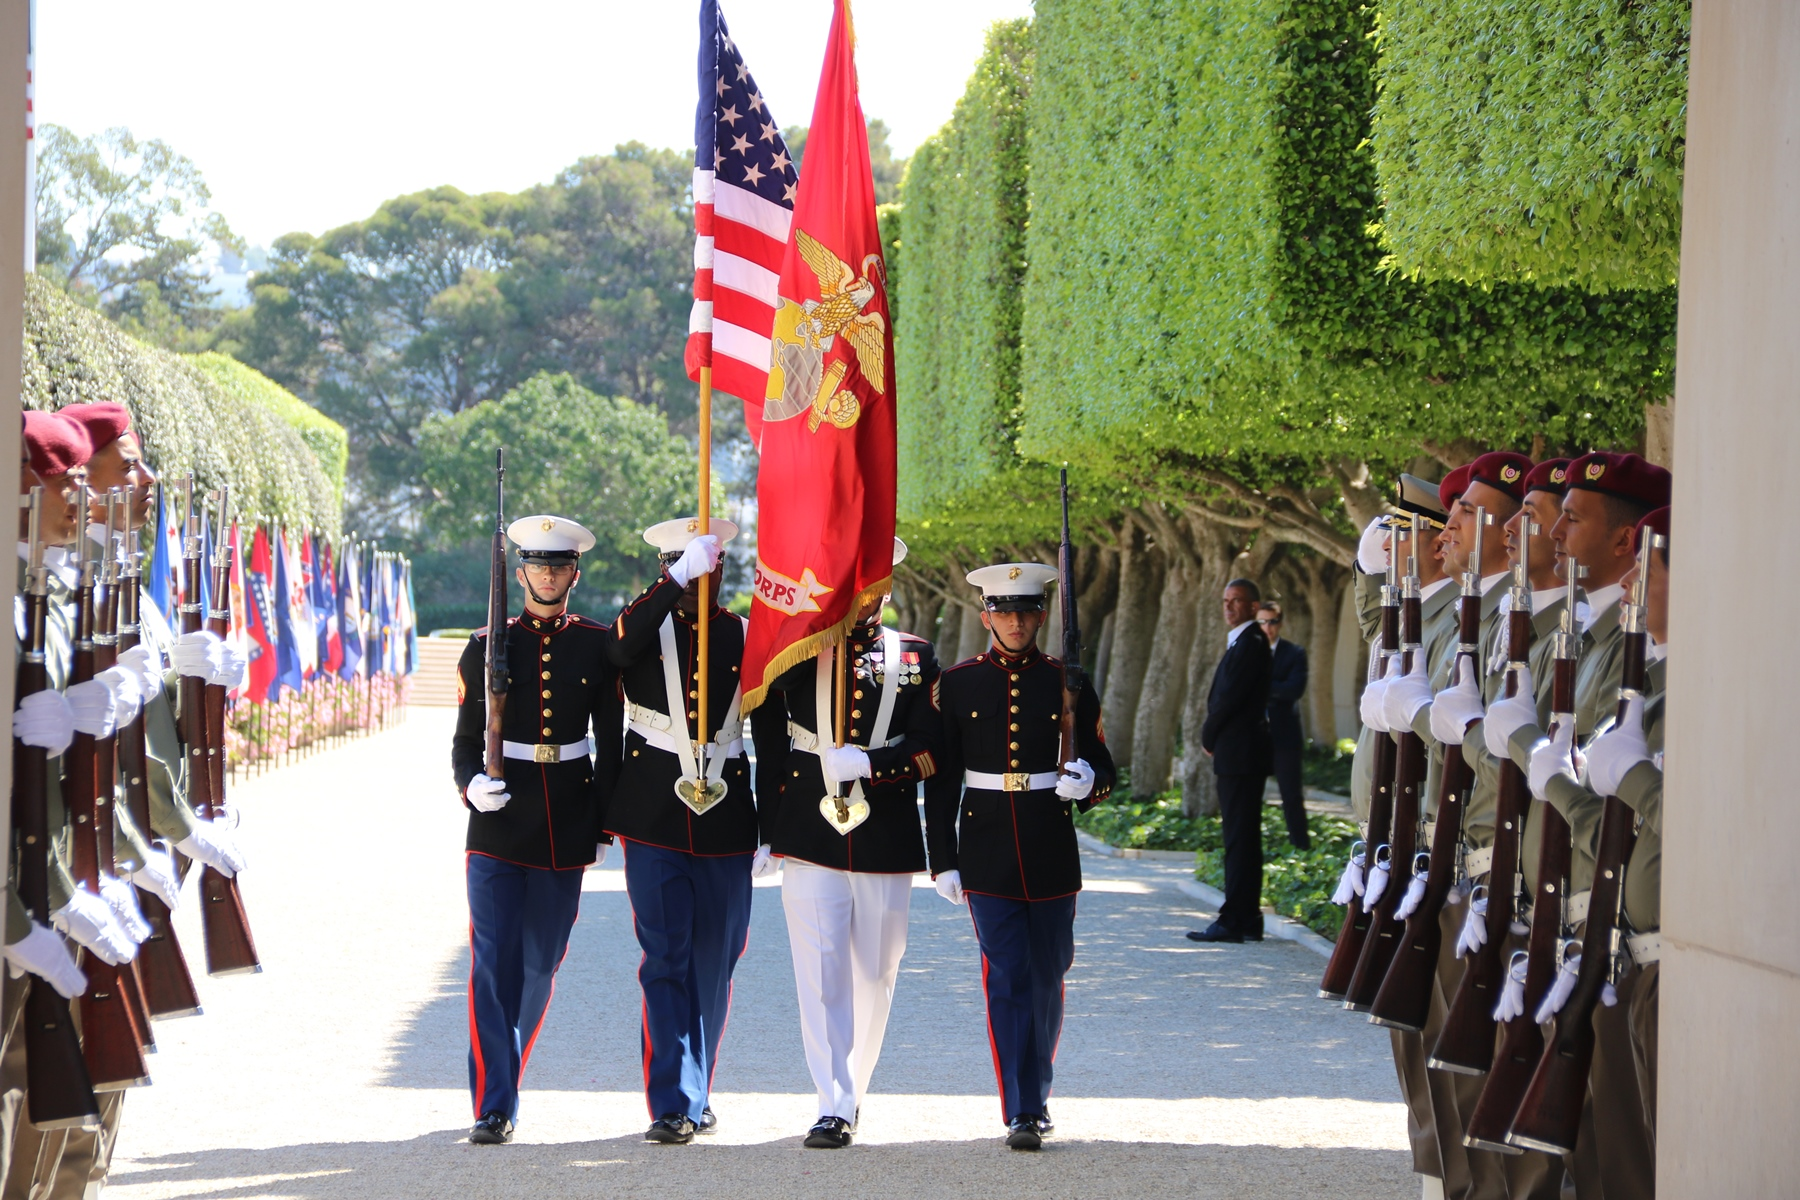 A U.S. Marine Corps Honor Guard presents the colors during the Memorial Day ceremony at the North Africa American Cemetery and Memorial in Carthage, Tunisia May 29, 2017. (U.S. Embassy Tunis photo by Zouhair Sfaxi/Released)